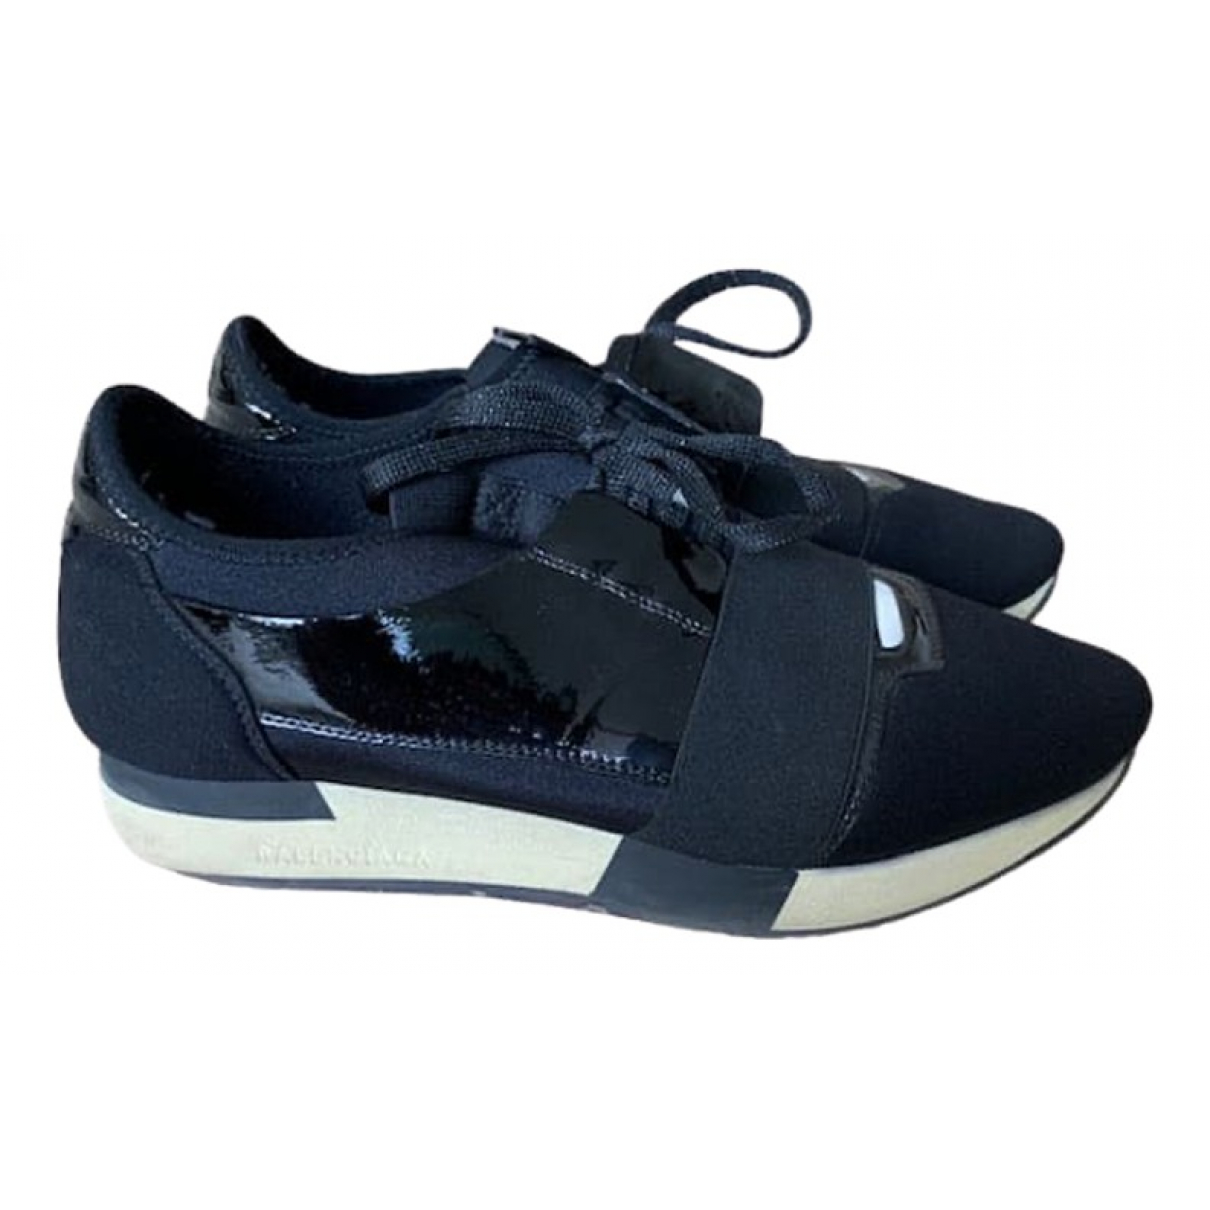 Balenciaga Race Black Cloth Trainers for Women 41 EU